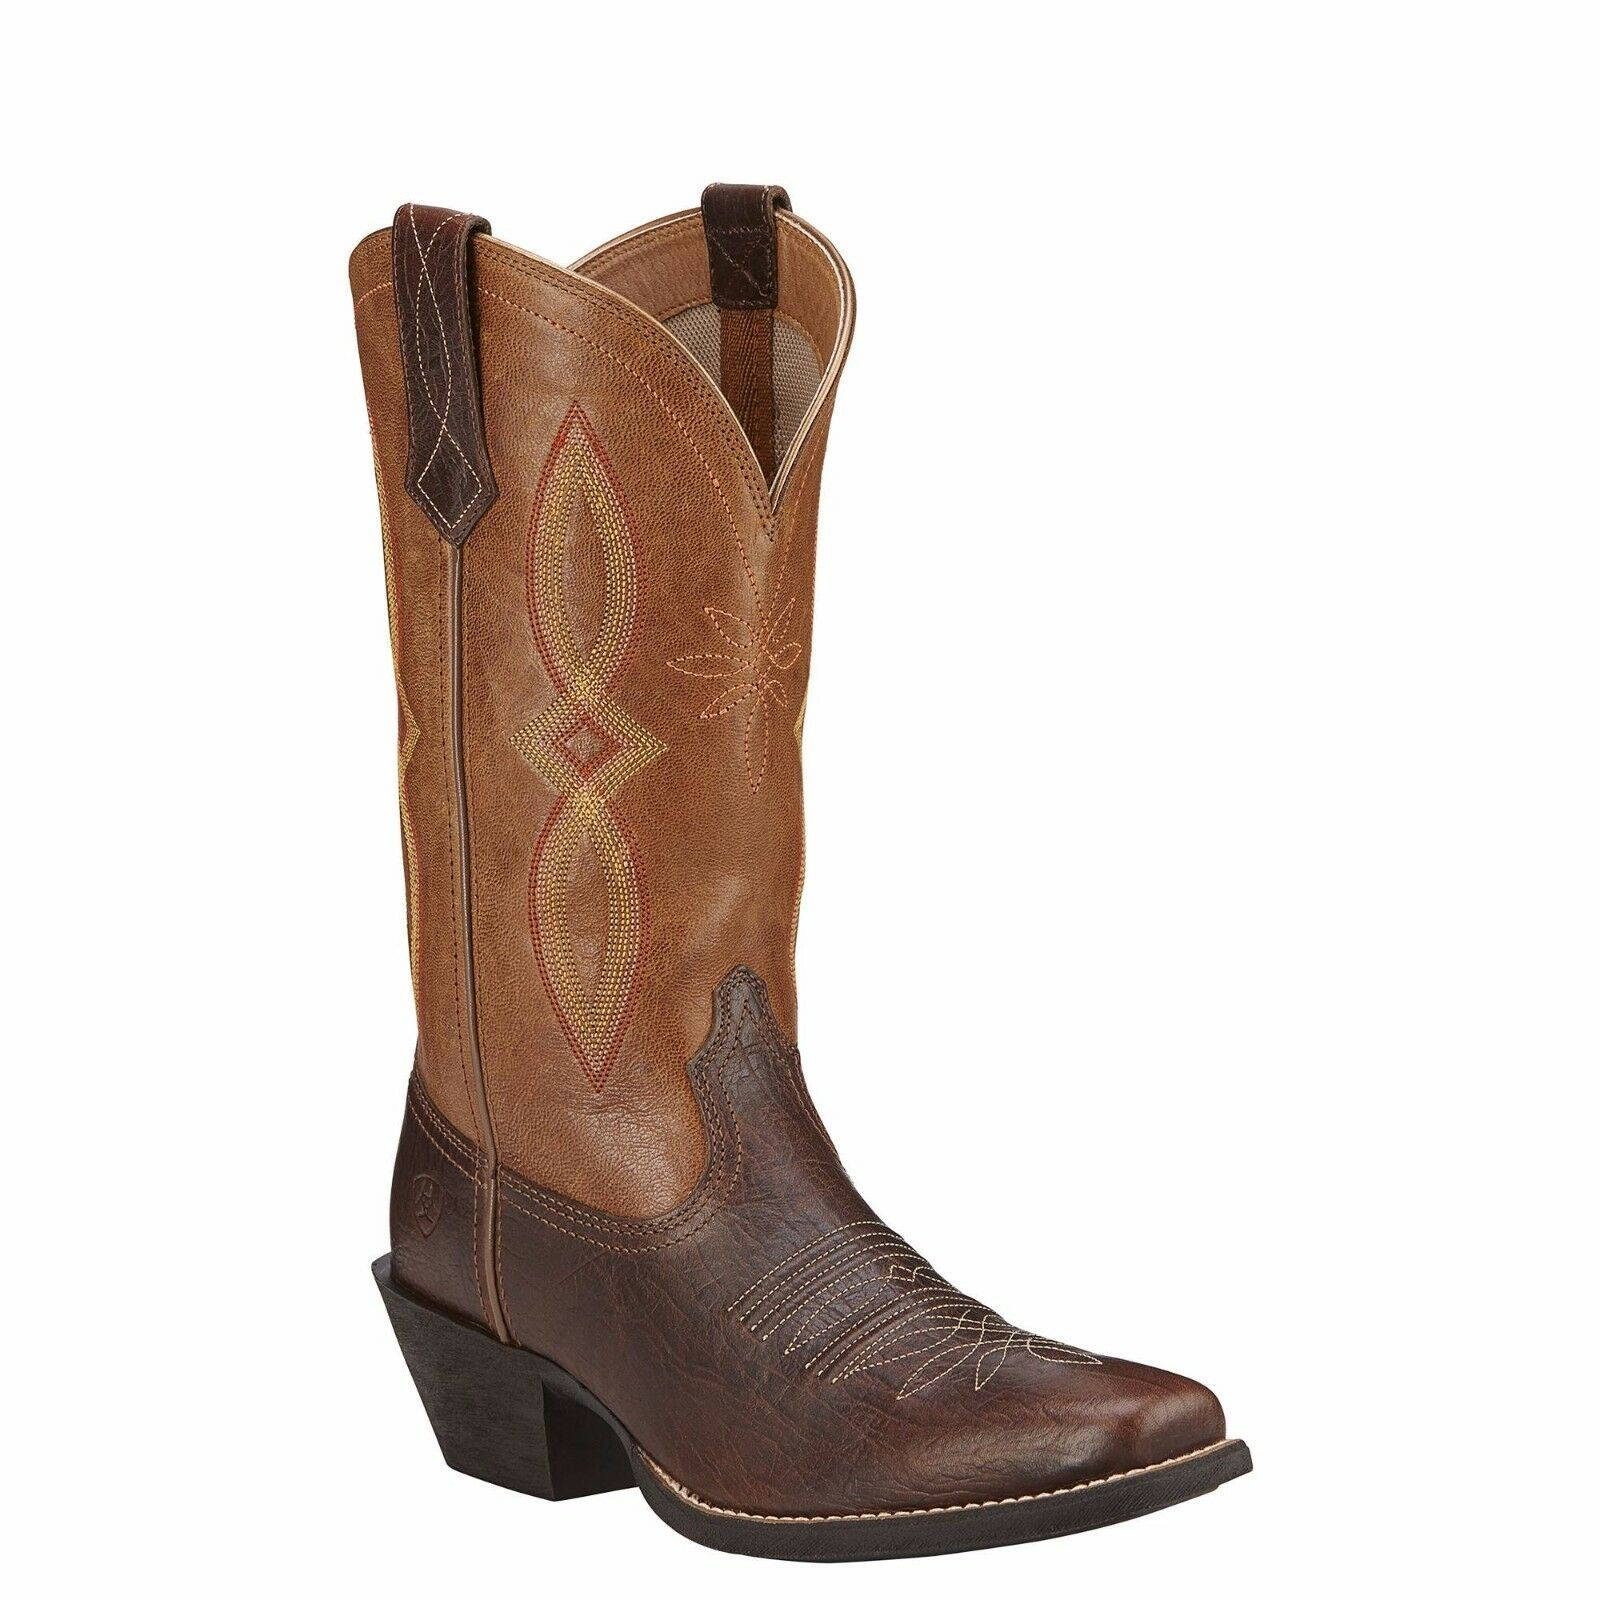 LADIES ARIAT ROUND UP II WESTERN BOOTS AVAILABLE 10016321 WIDE WIDTHS AVAILABLE BOOTS 060dec